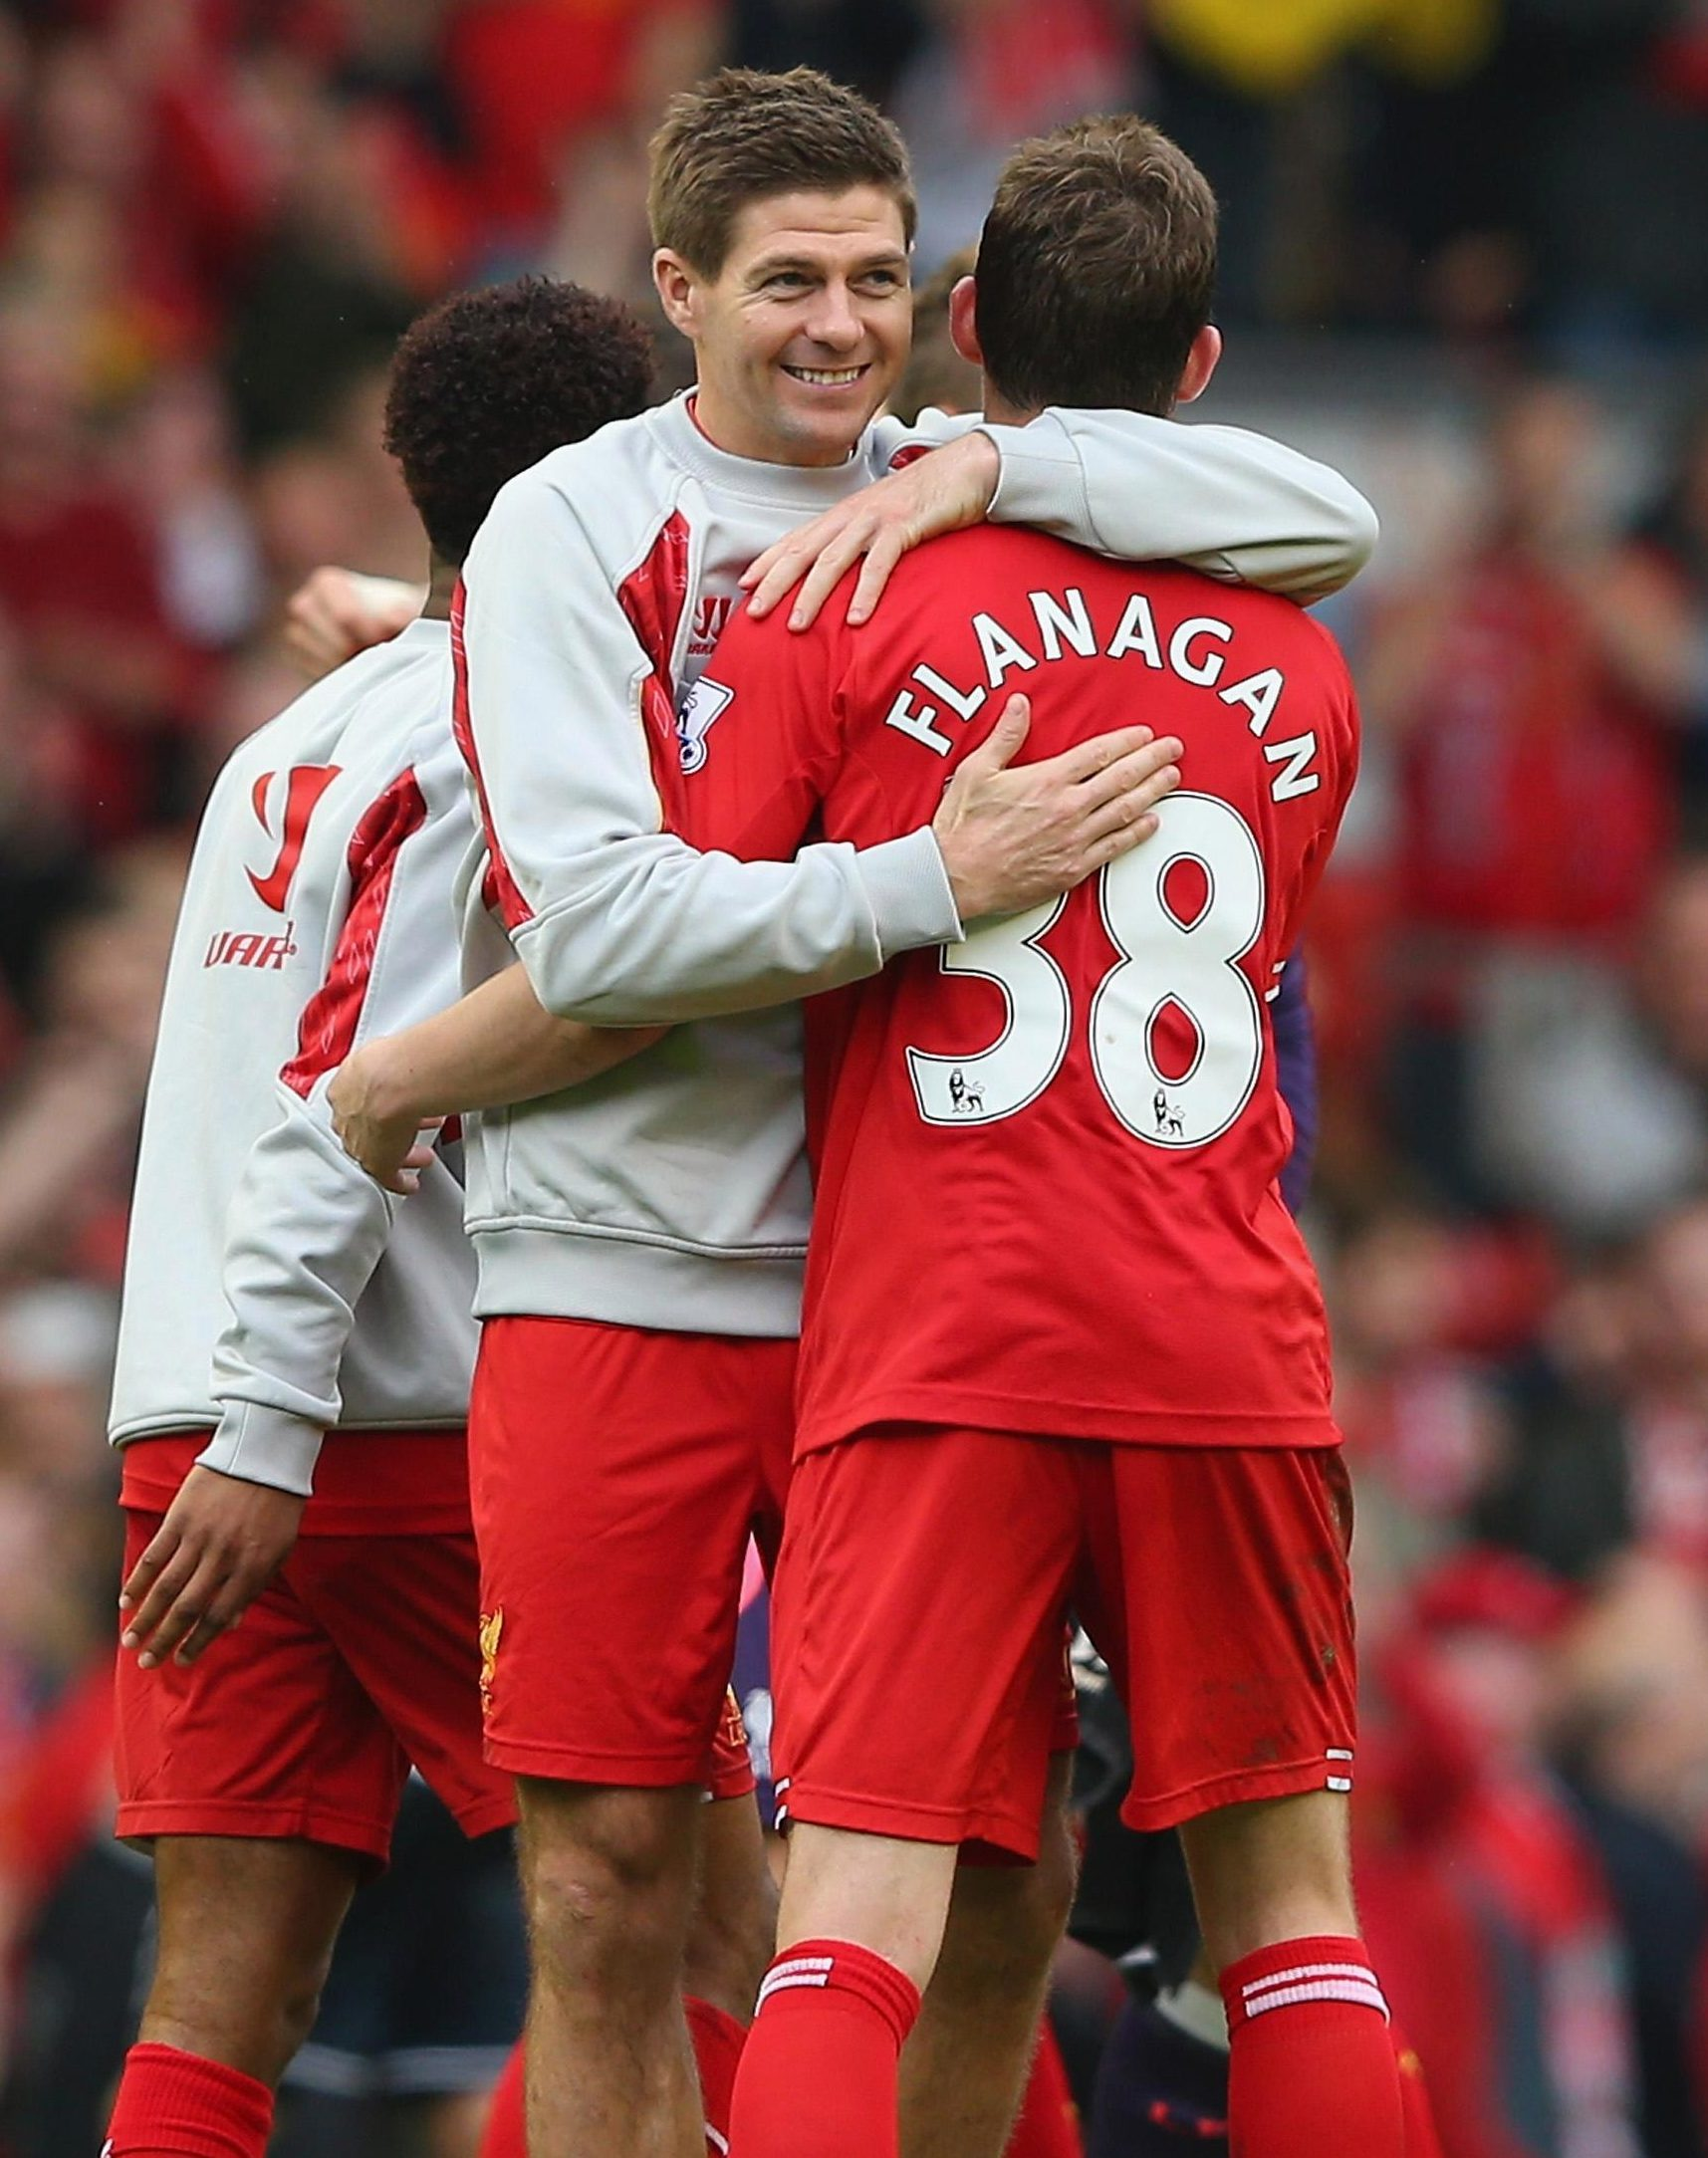 Steven Gerrard and Jon Flanagan will now be reunited north of the border